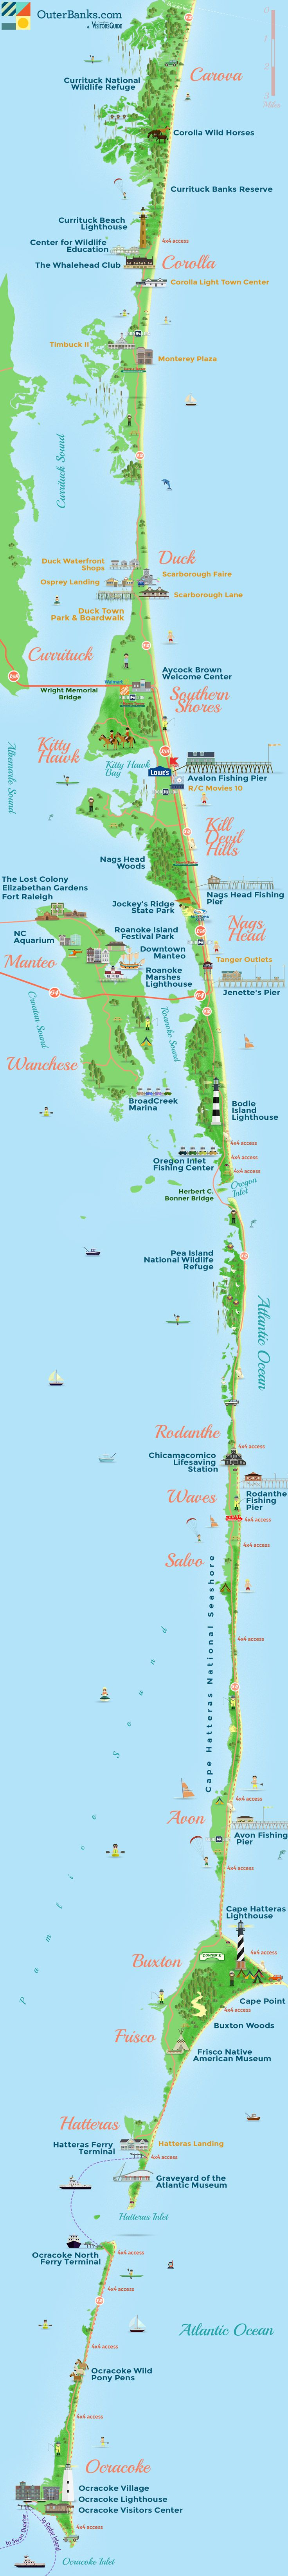 Outer Banks Map - OuterBanks.com.  LOVE this area!!!